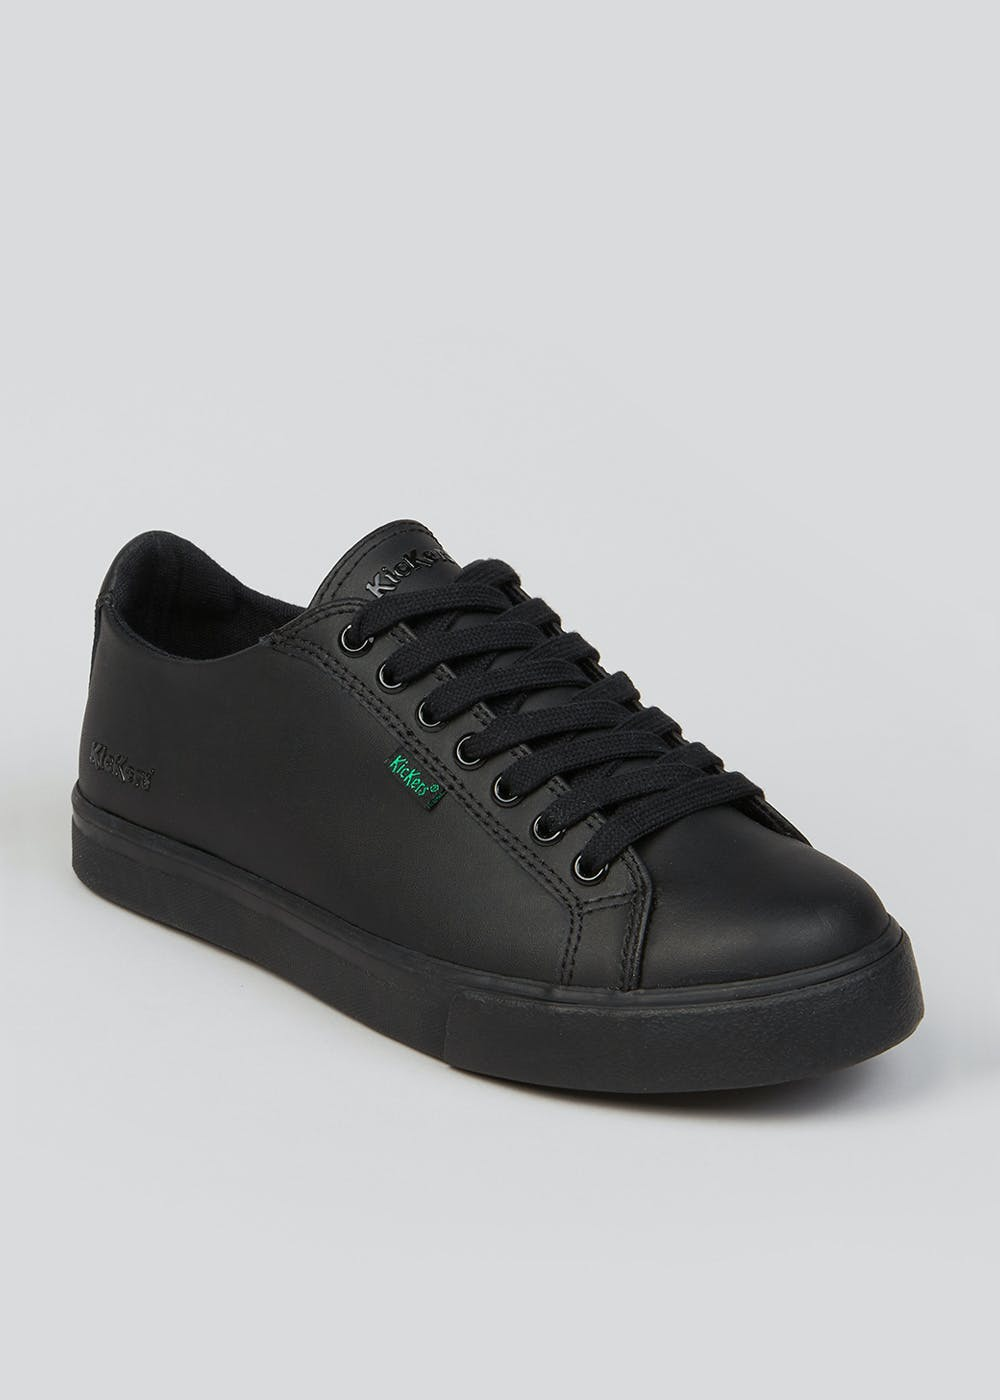 7f3e5268 Boys Kickers Tovni Lace up Shoes (Younger 13-Older 6) – Black – Matalan